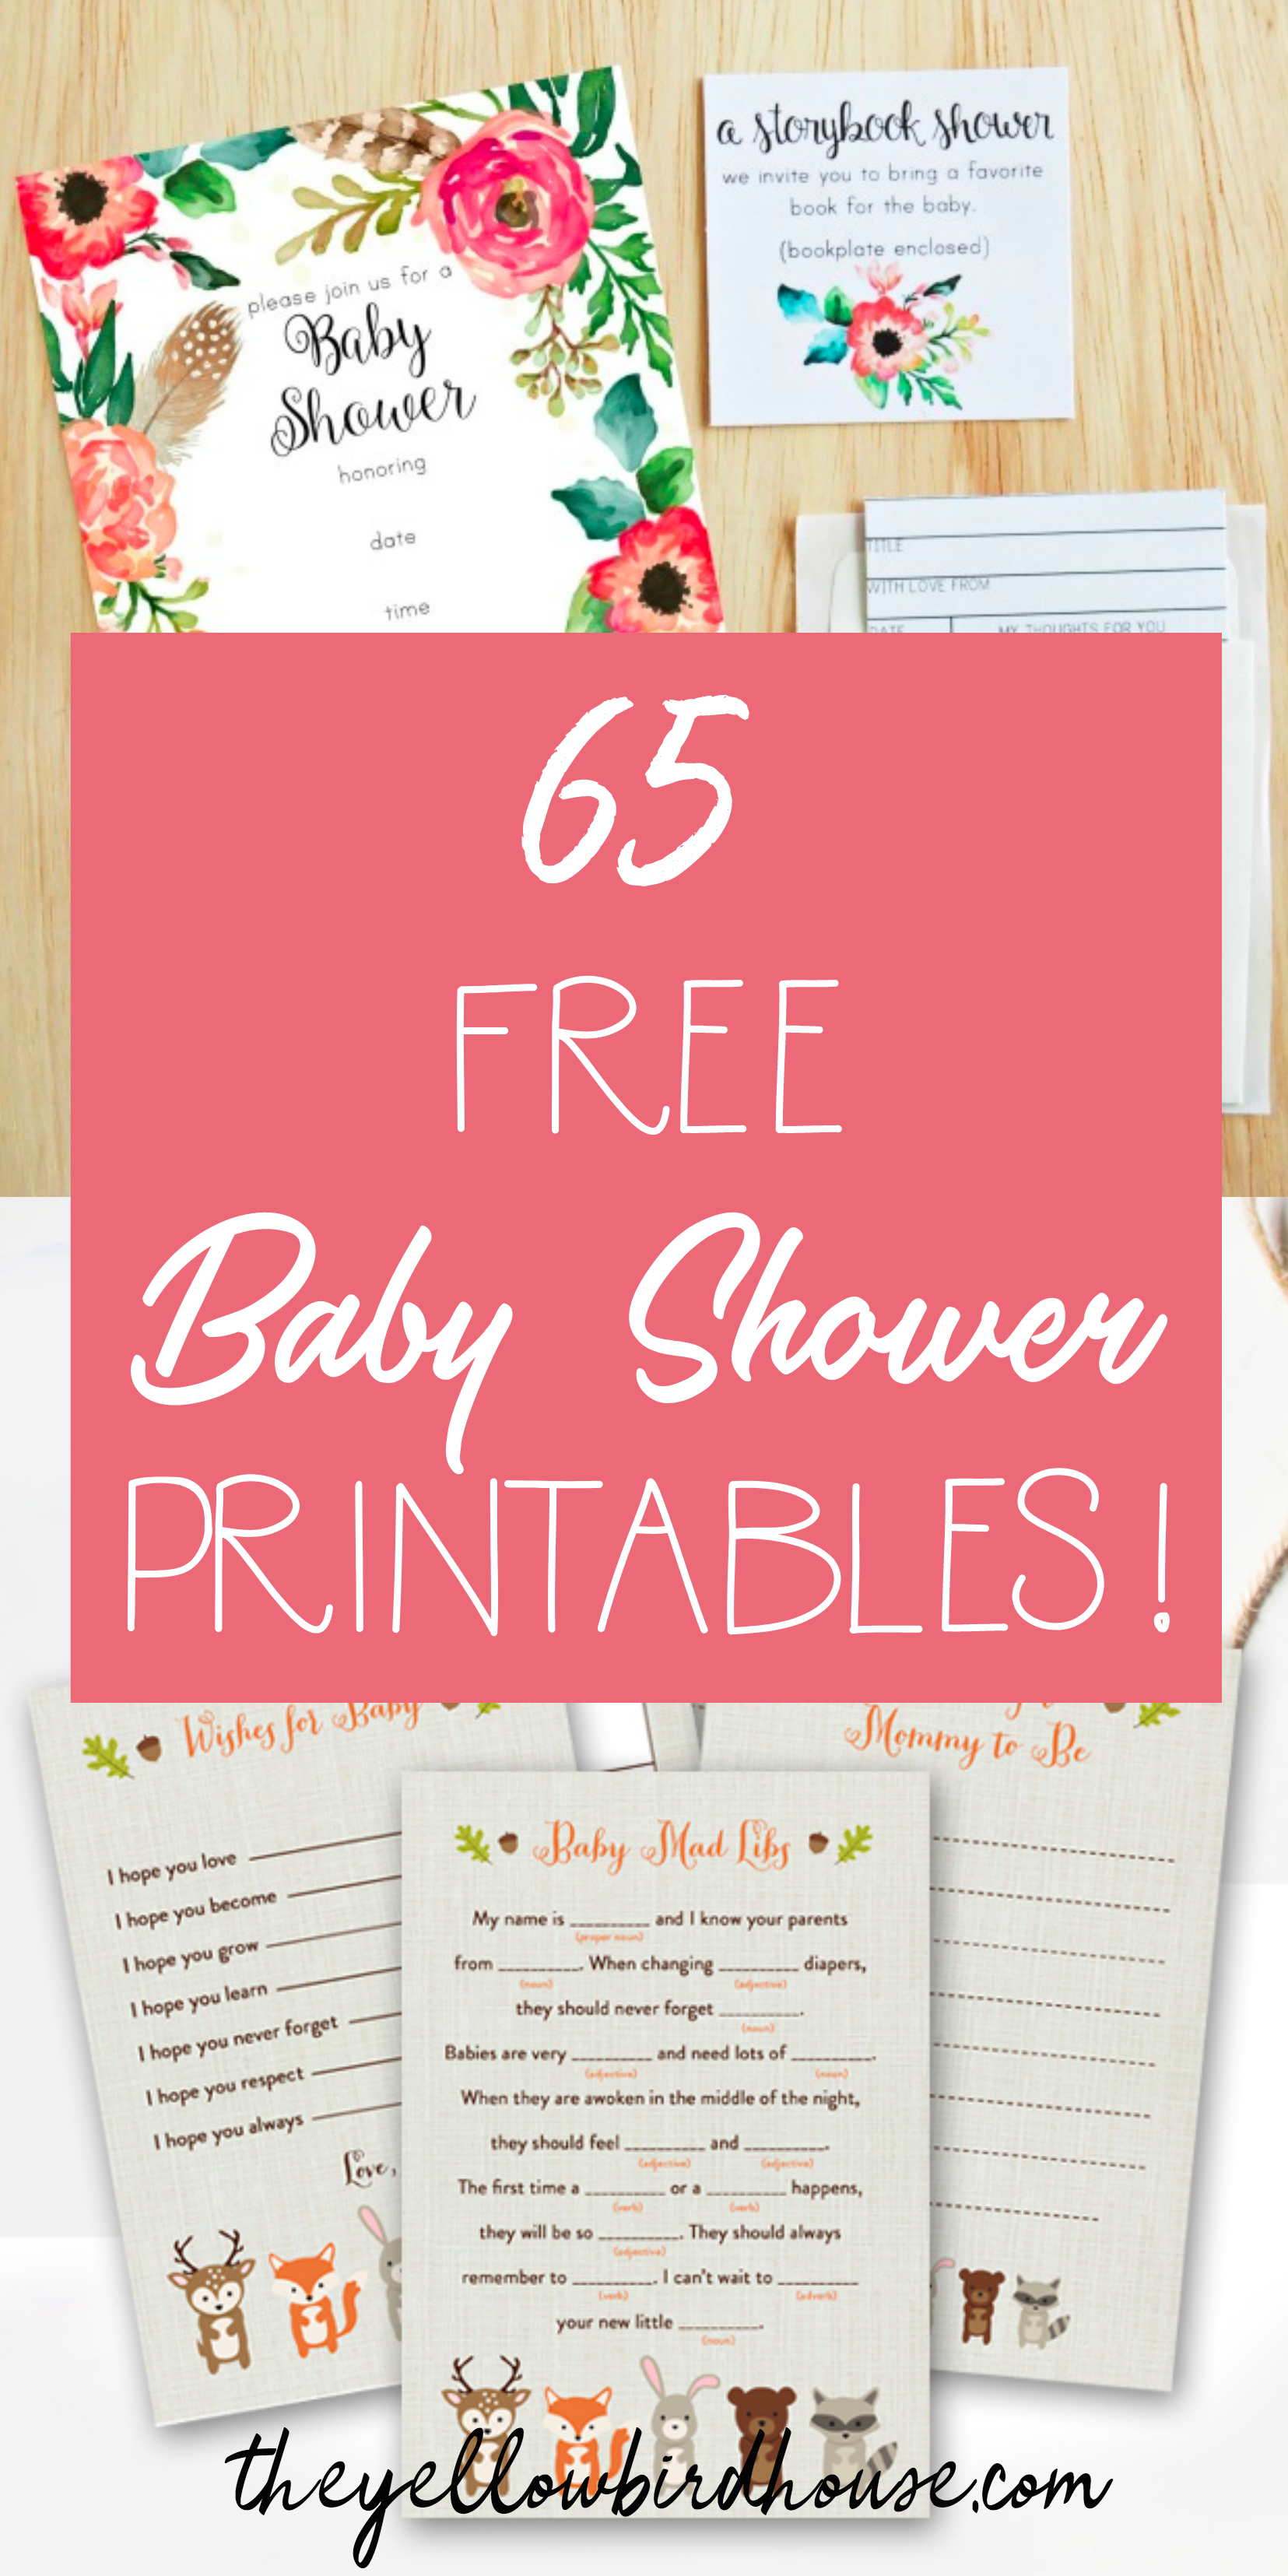 65 Free Baby Shower Printables For An Adorable Party - Free Printable Baby Sprinkle Invitations